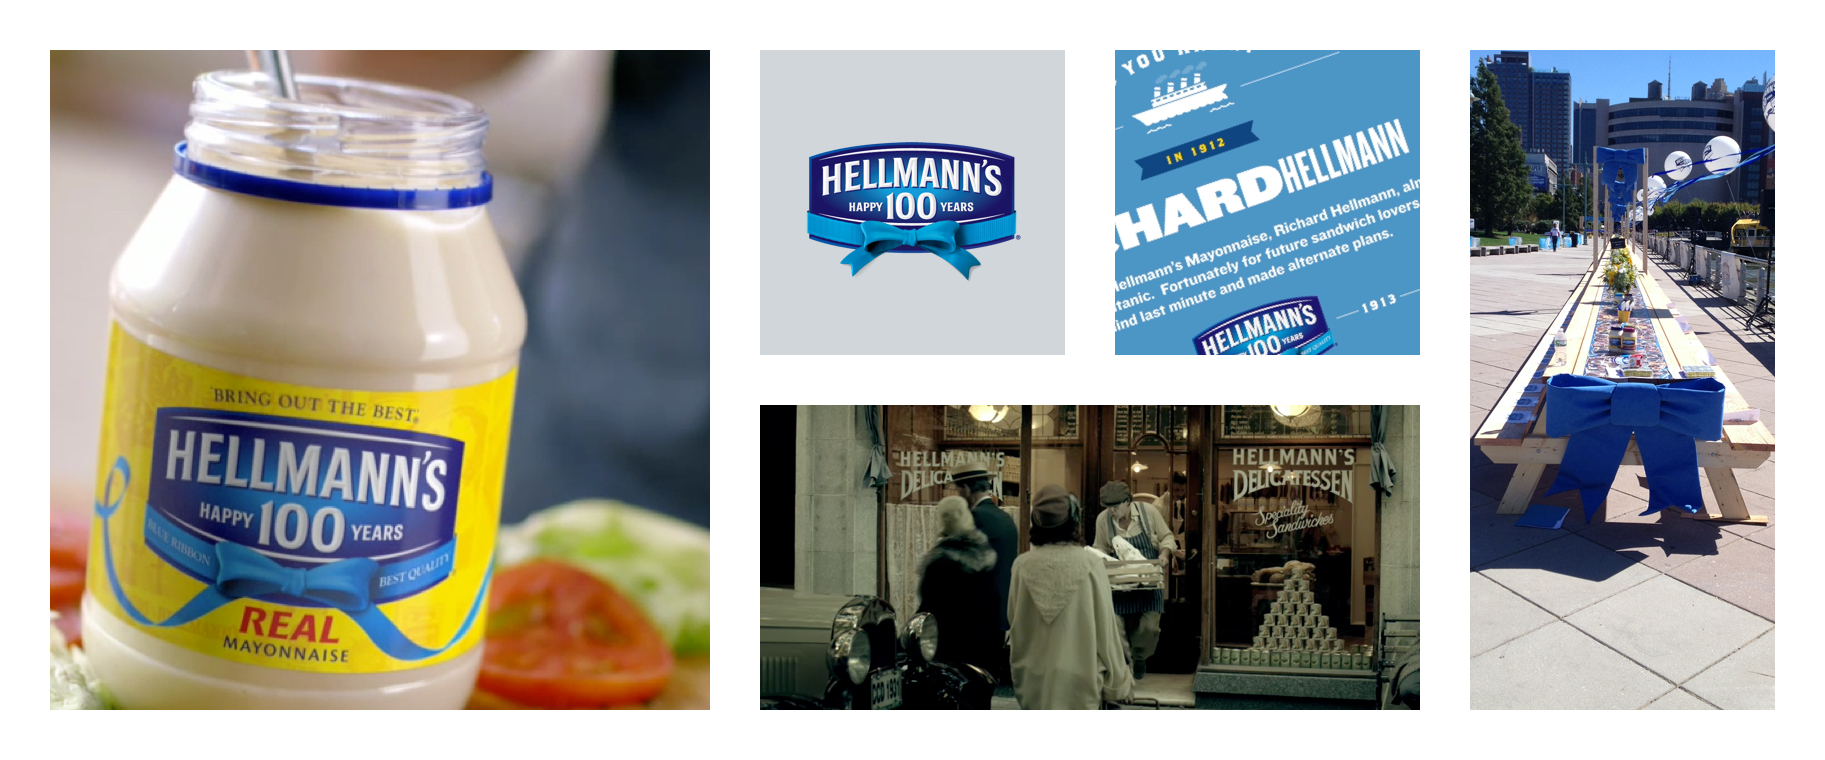 Hellmann's branding and design assets